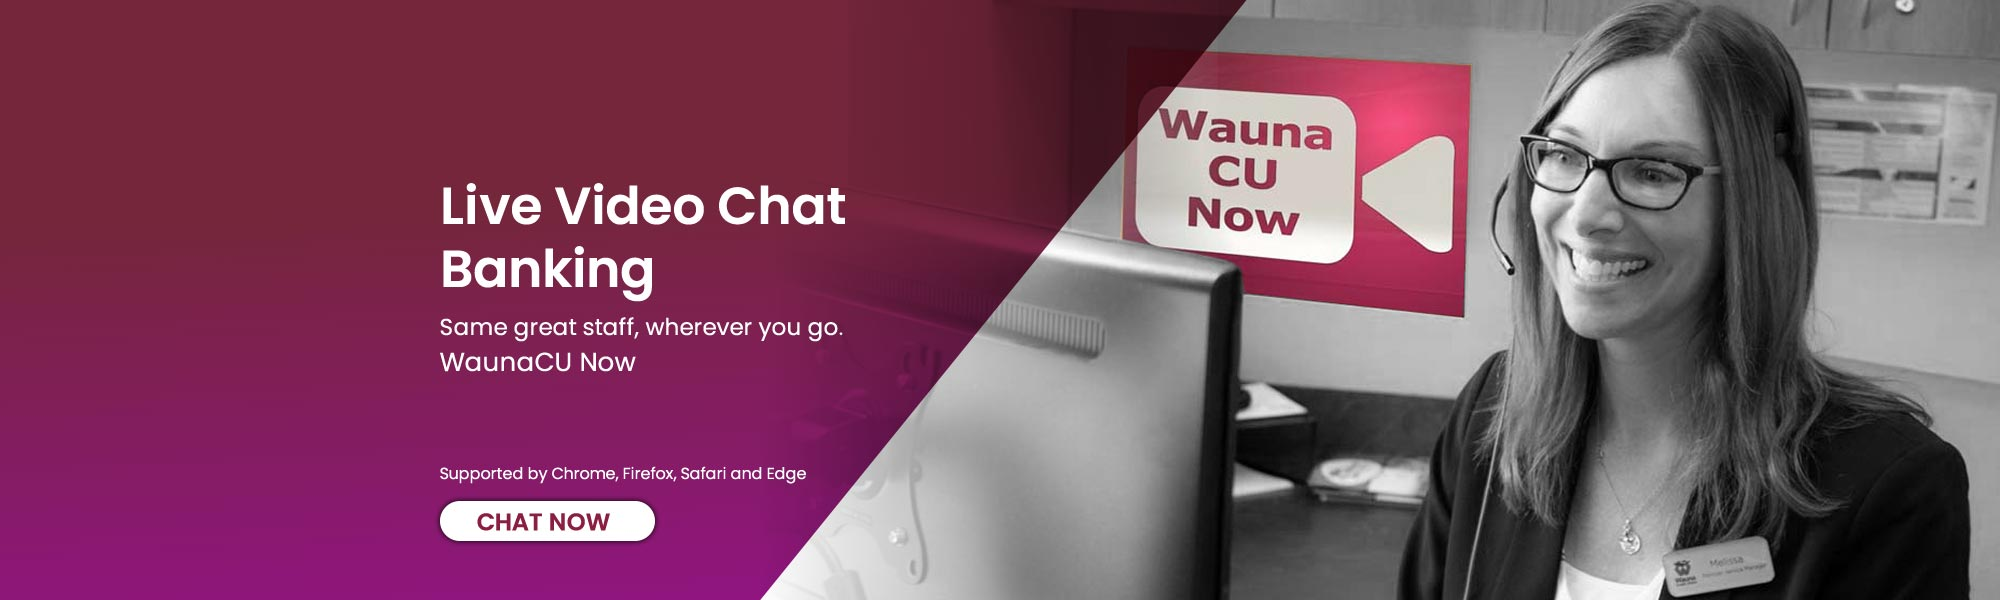 Link to Wauna CU Now video chat